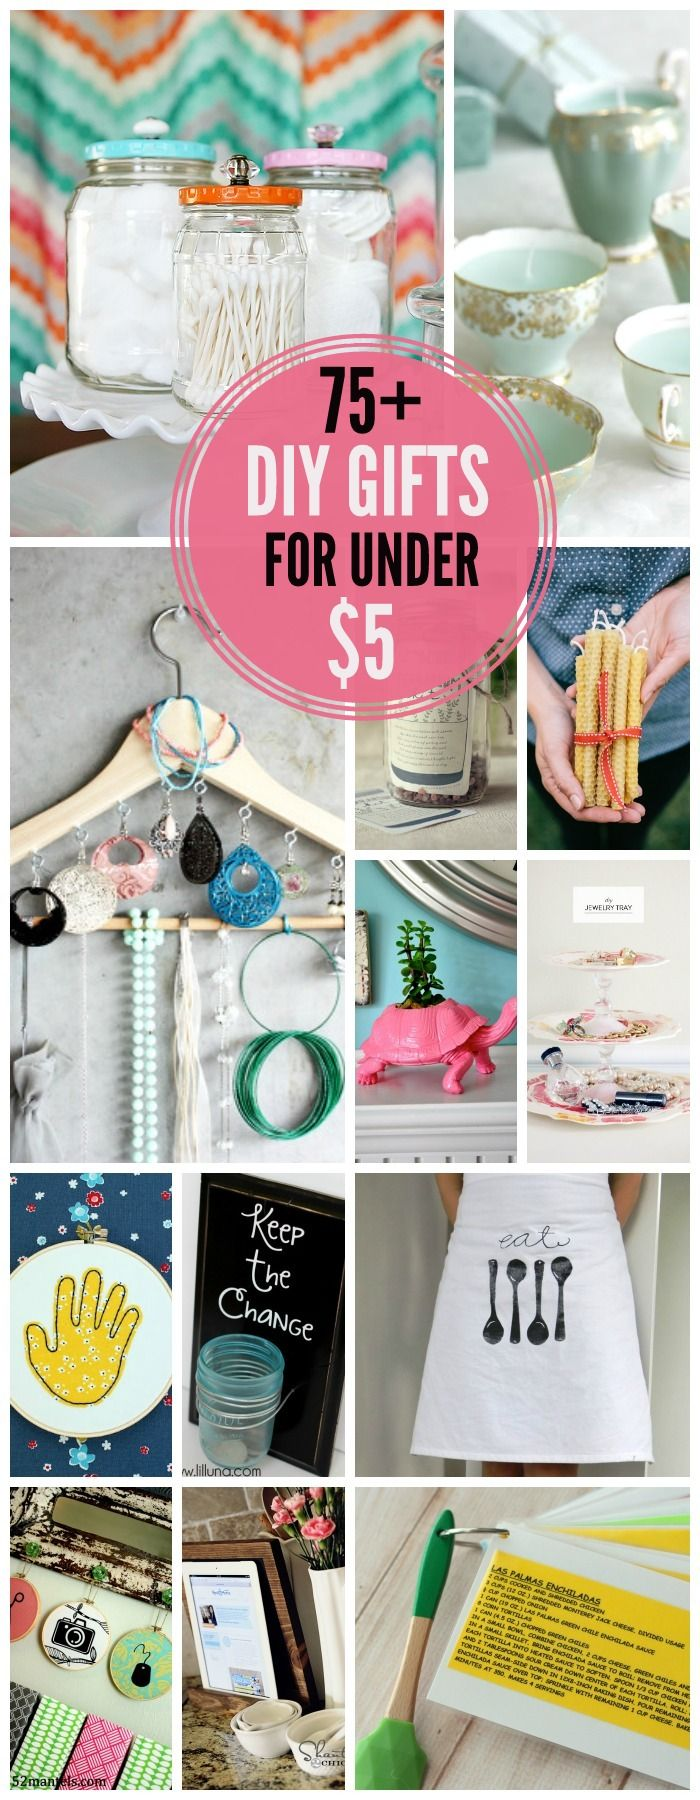 Unisex Gifts Under 25 75+ diy gift ideas for under $5 // like this list. a lot of